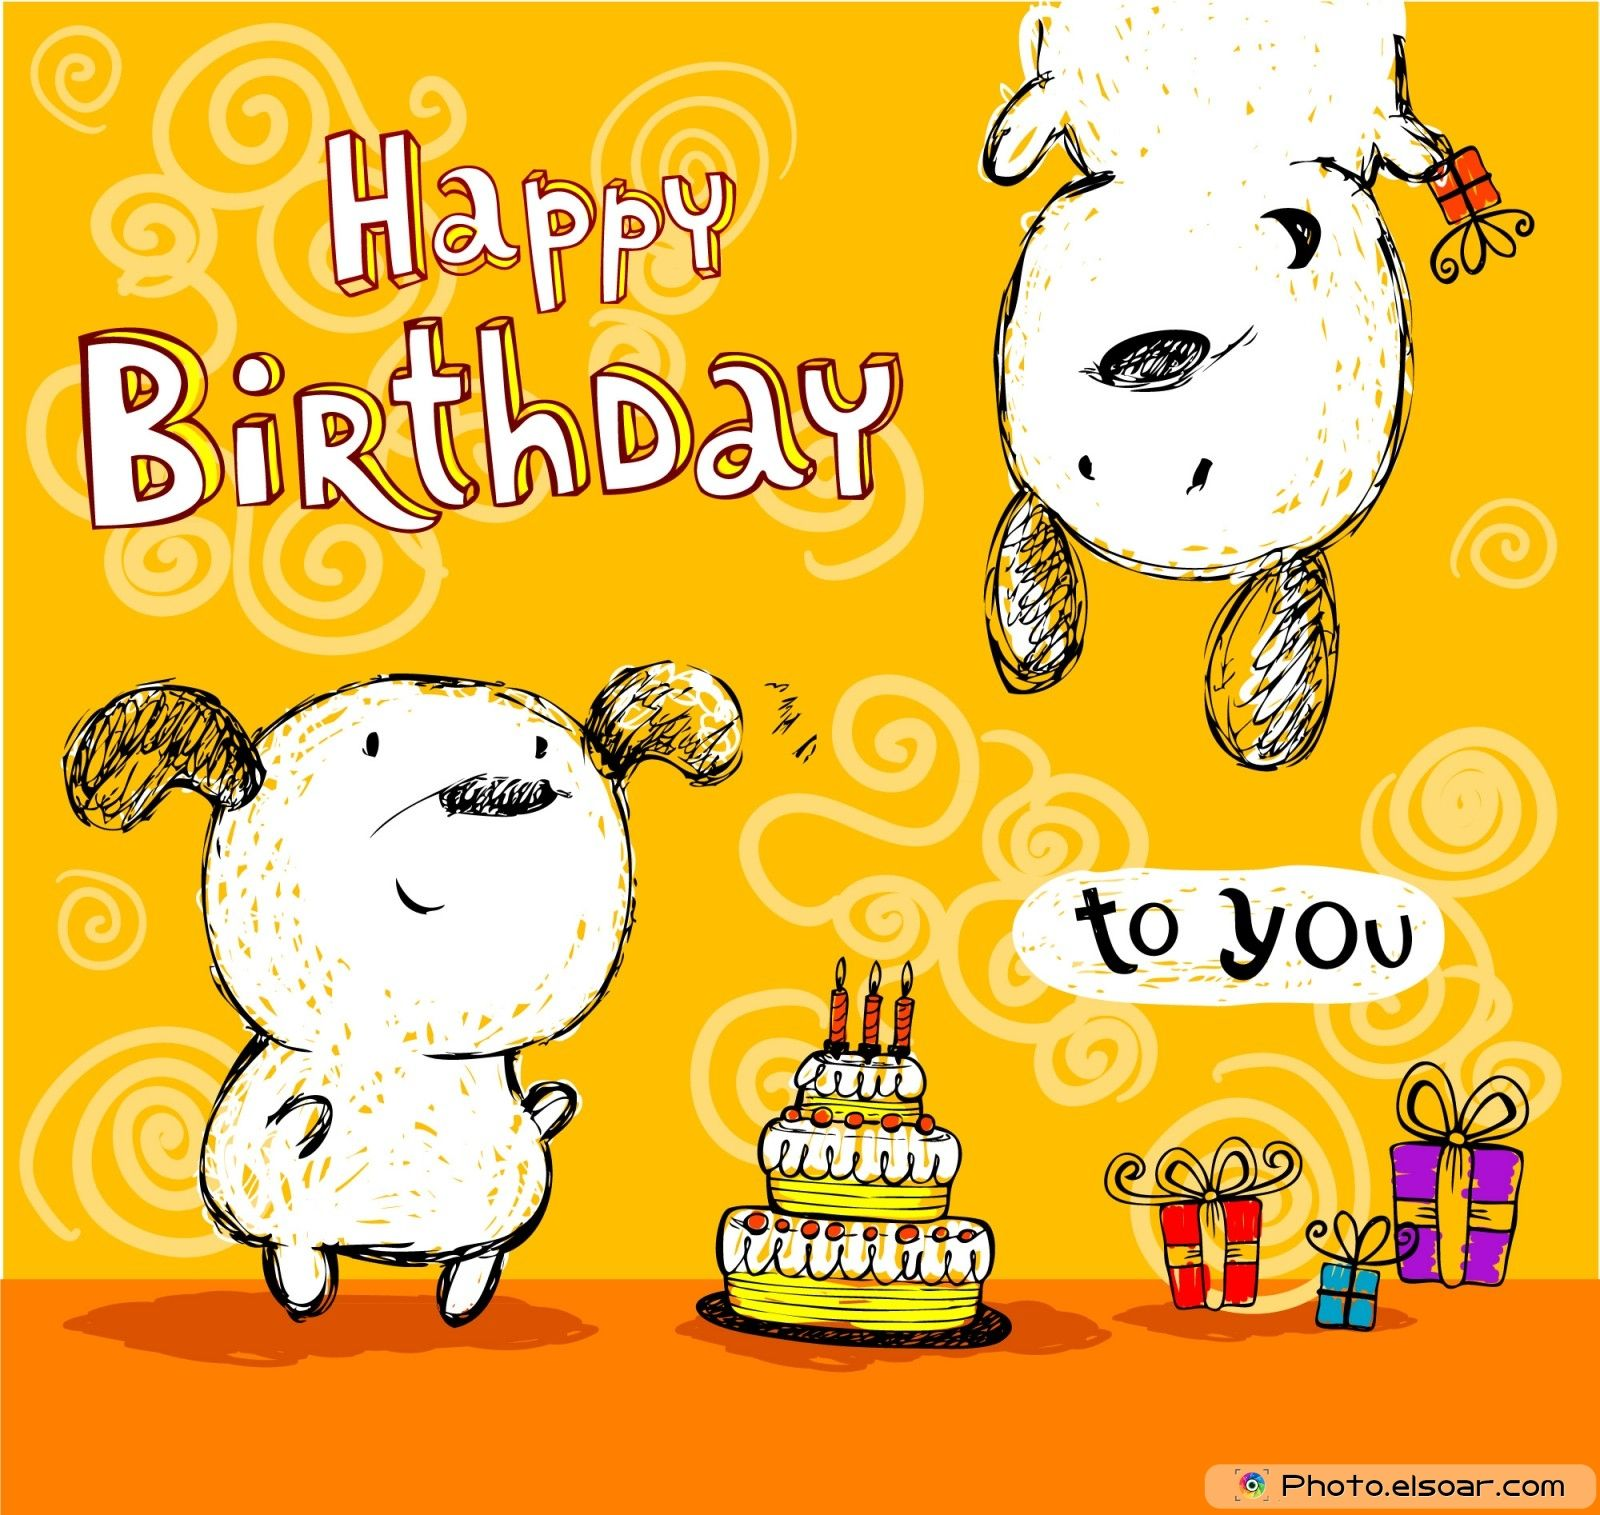 Happy Birthday to you card friends